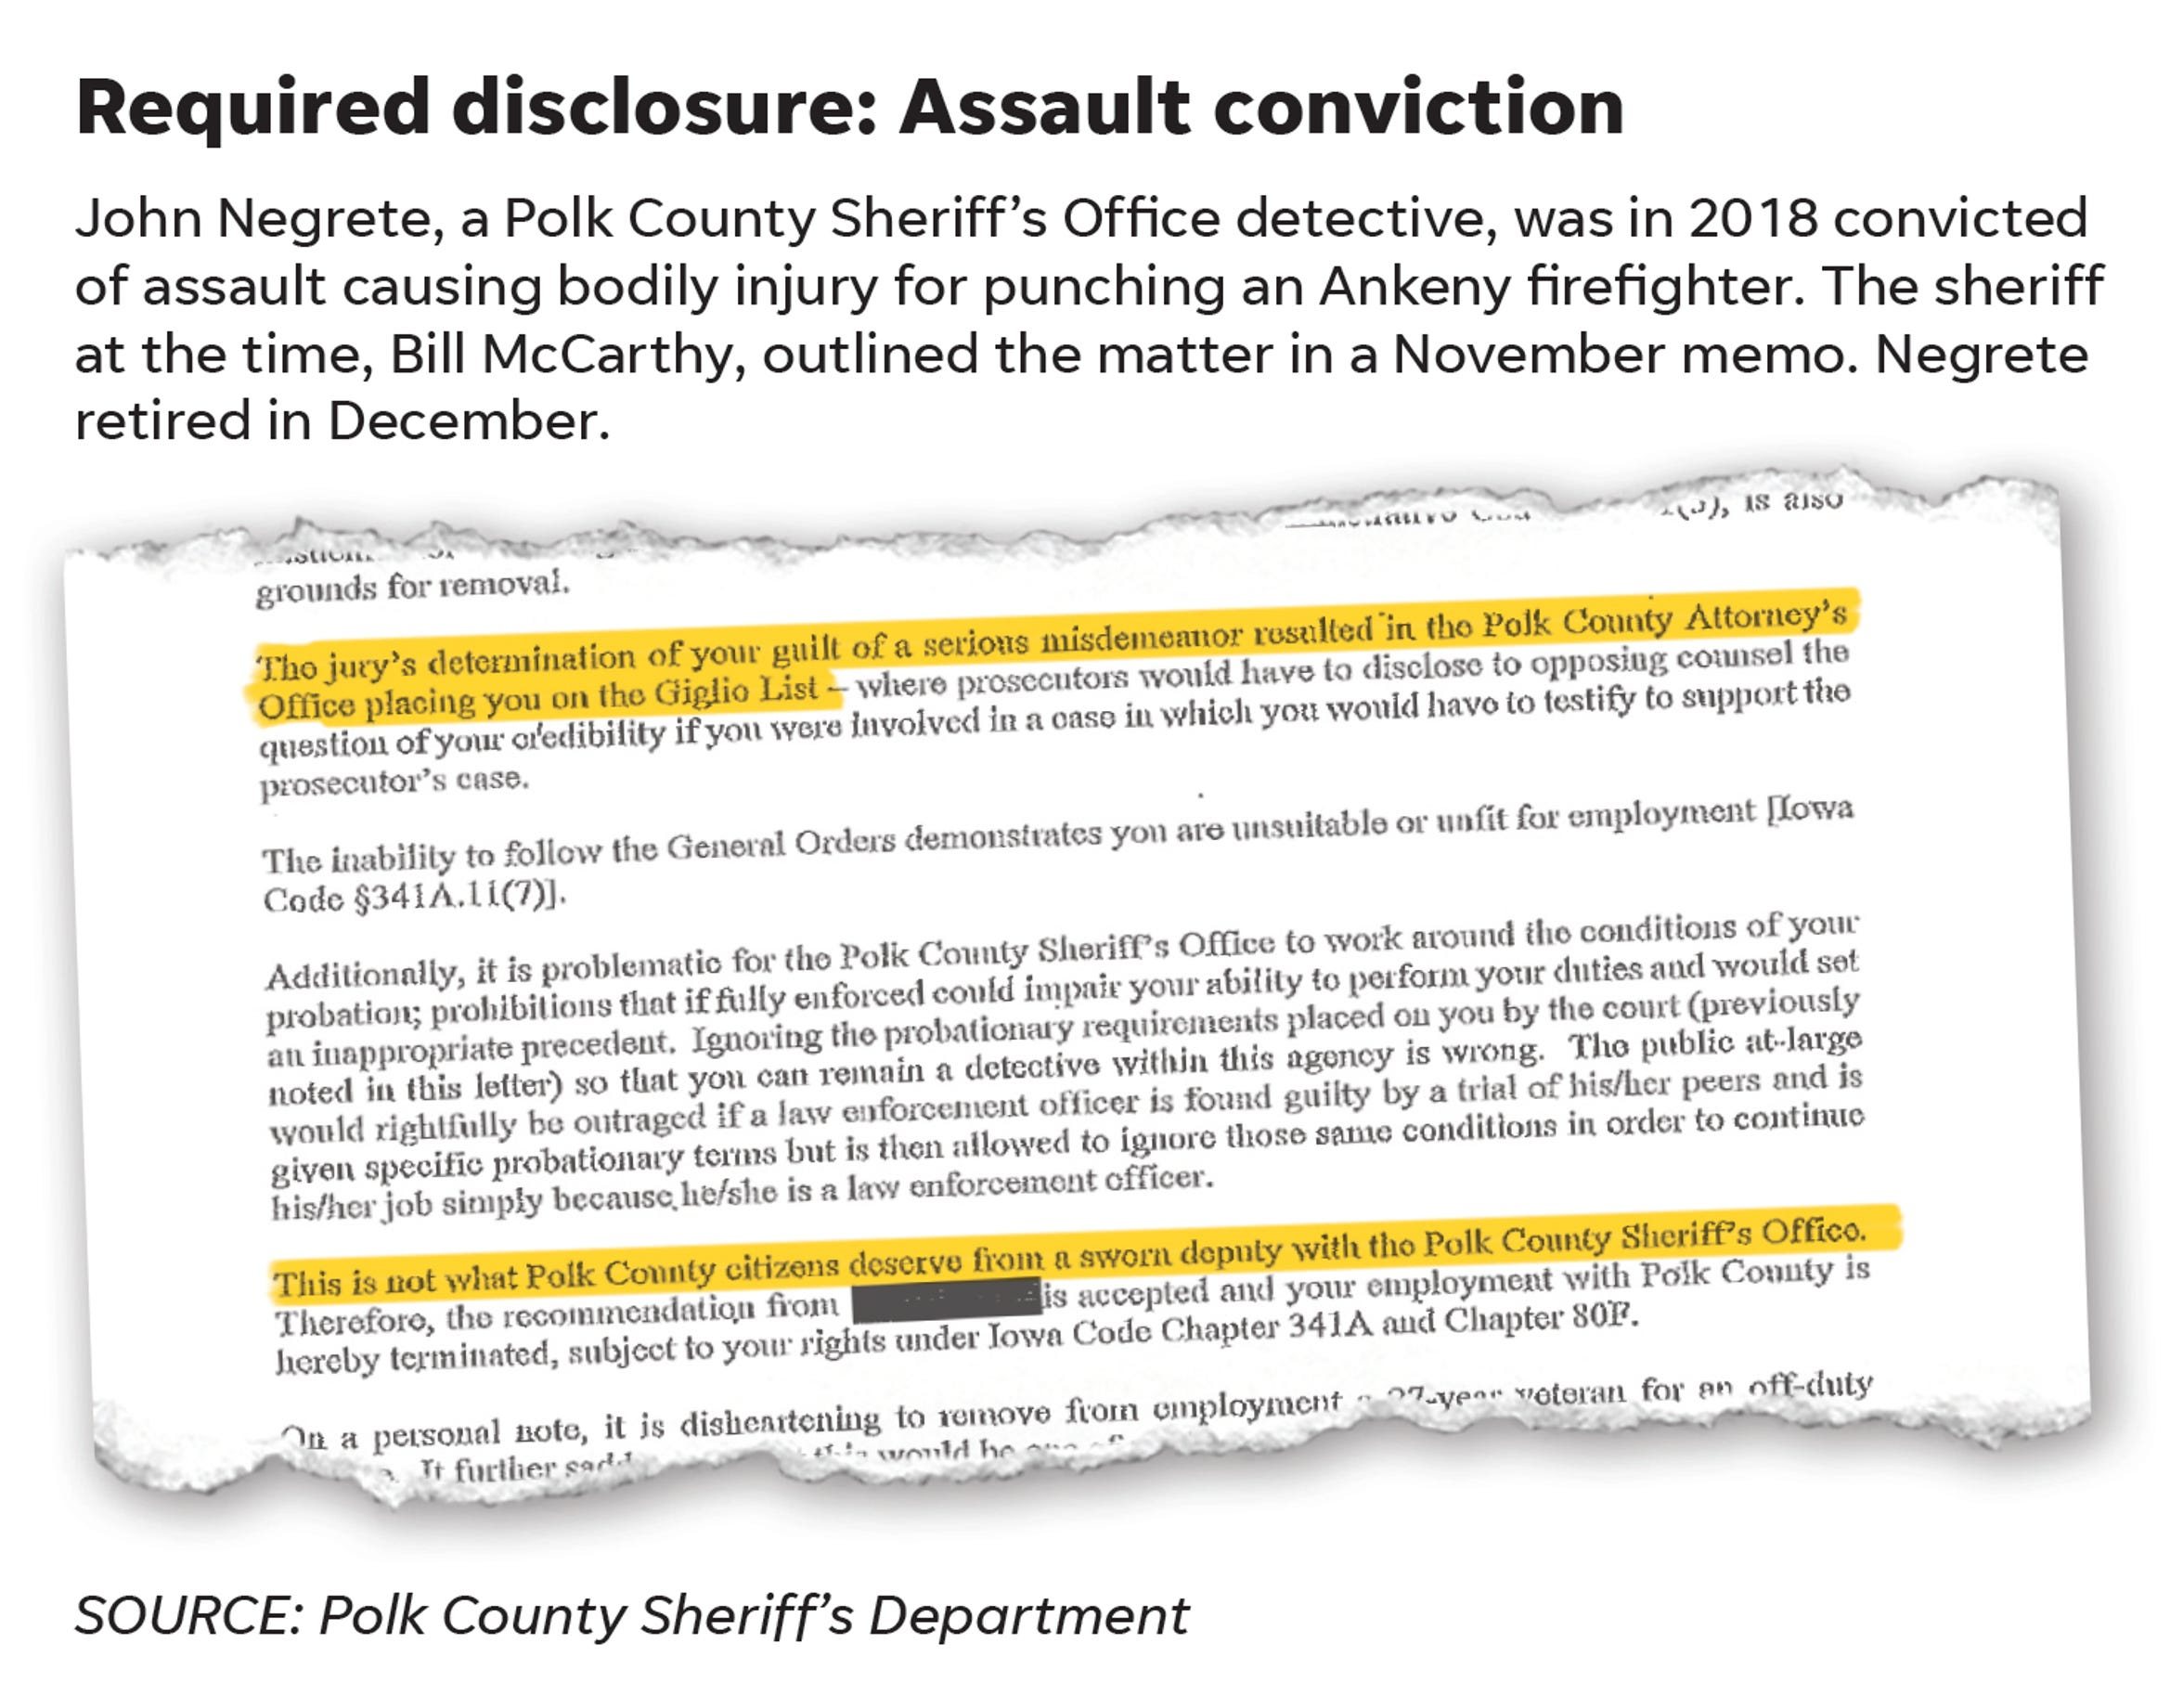 Required disclosure: Assault conviction